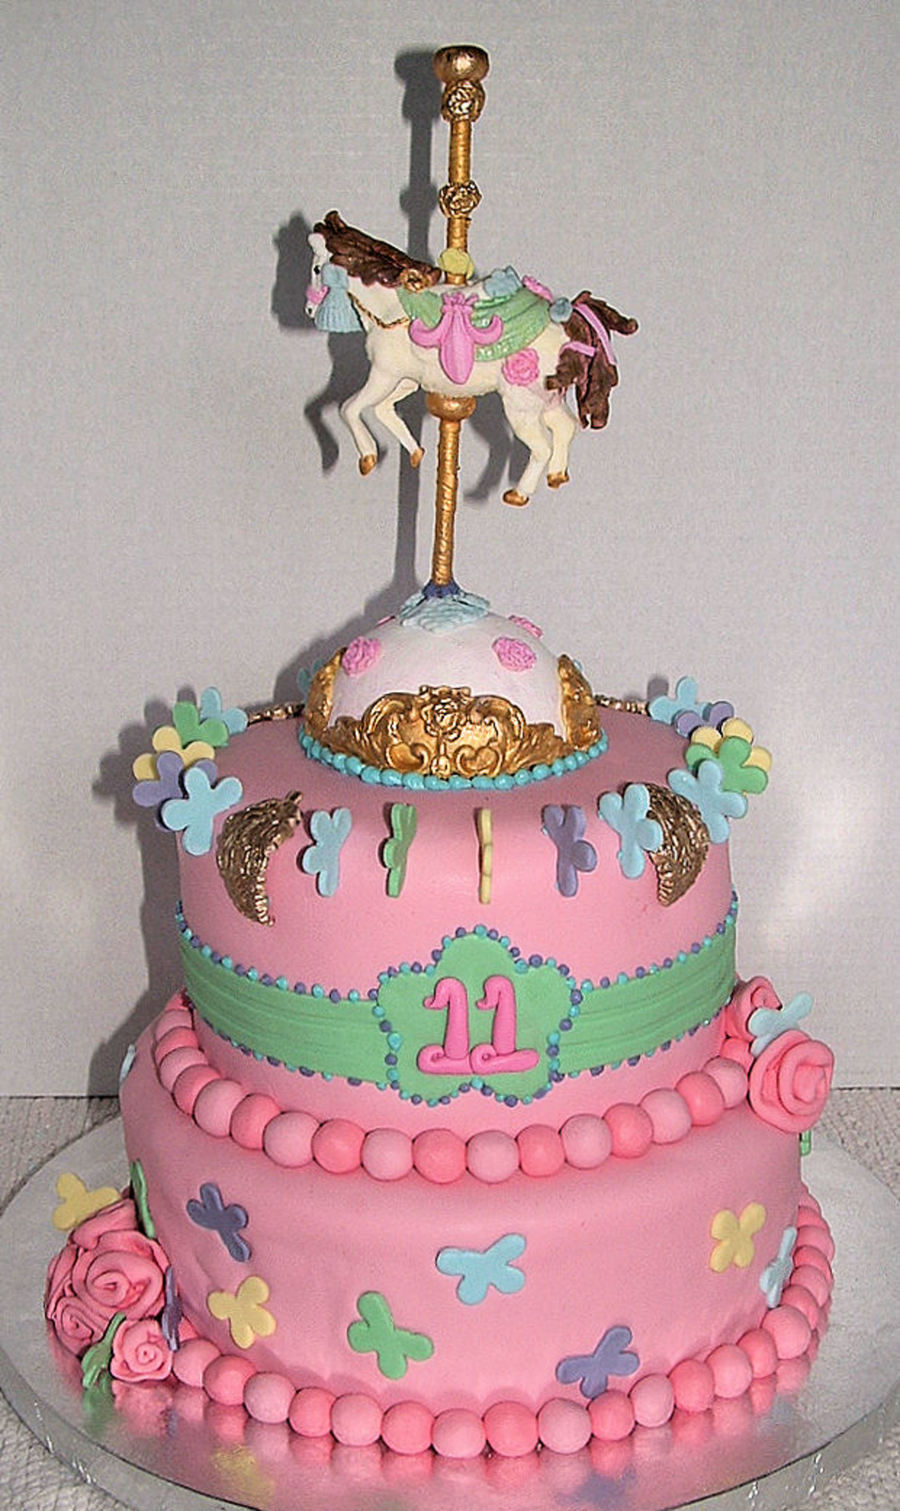 Carousel Horse Cake - CakeCentral.com